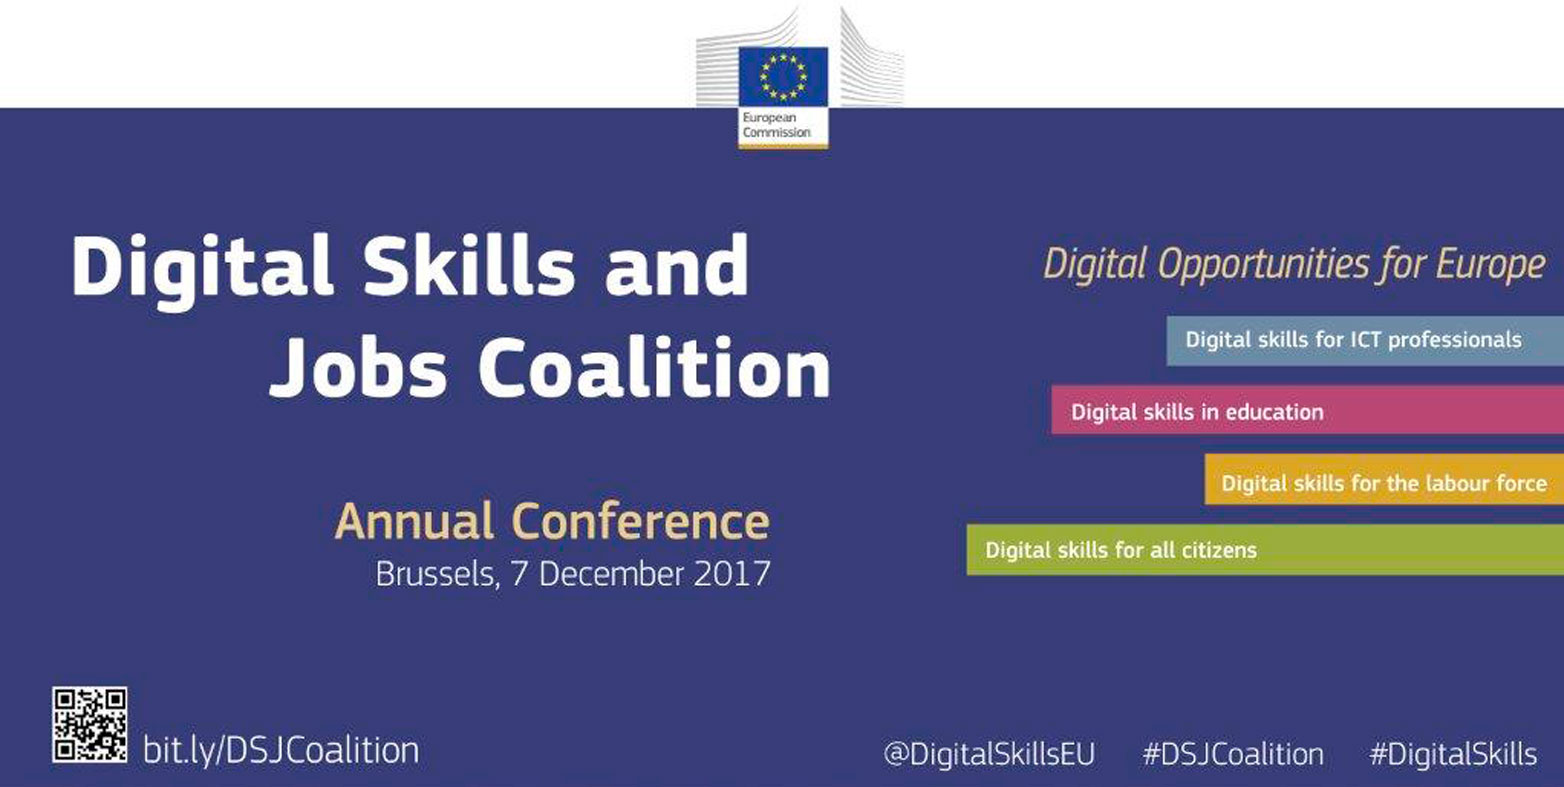 Cibervoluntarios Foundation finalist in the European Digital Skills Awards 2017